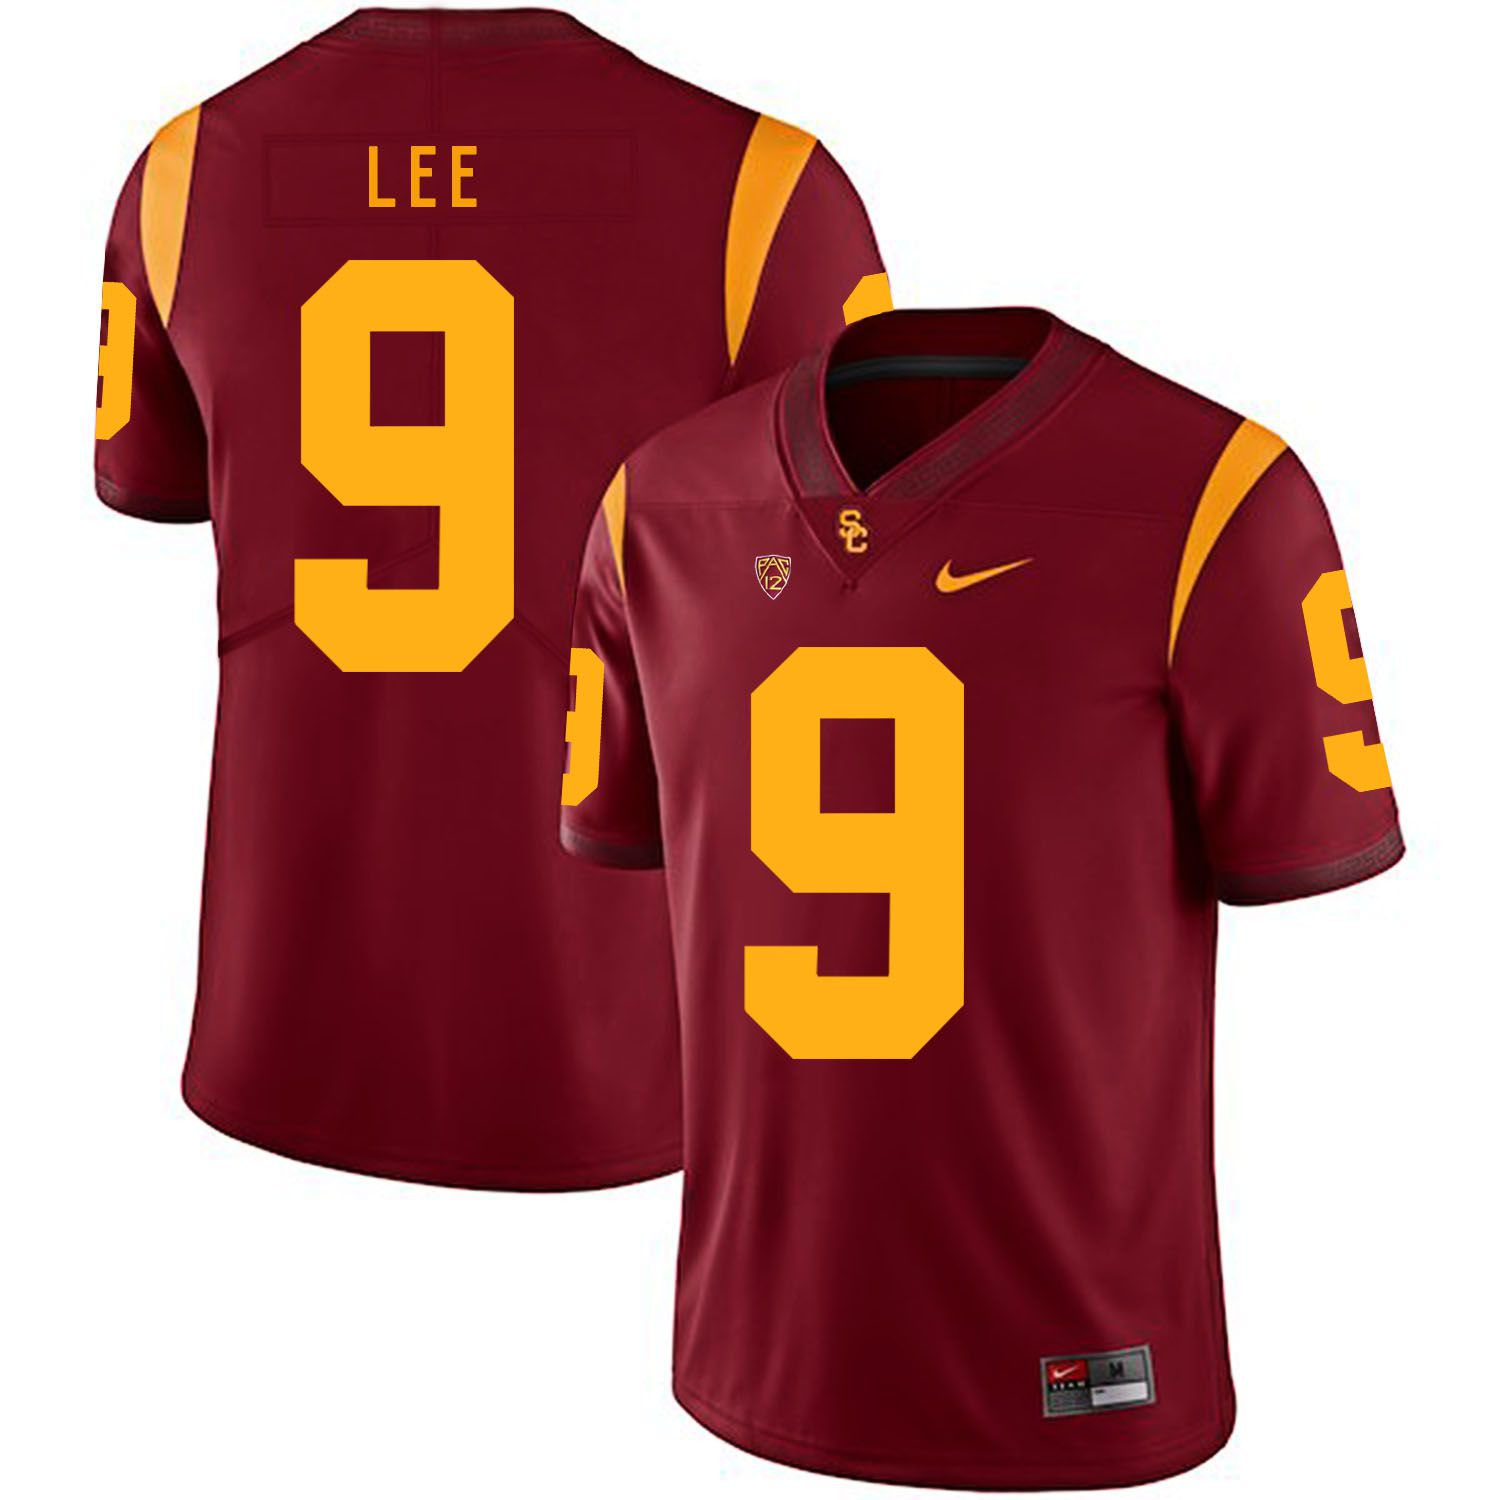 Men USC Trojans 9 Lee Red Customized NCAA Jerseys